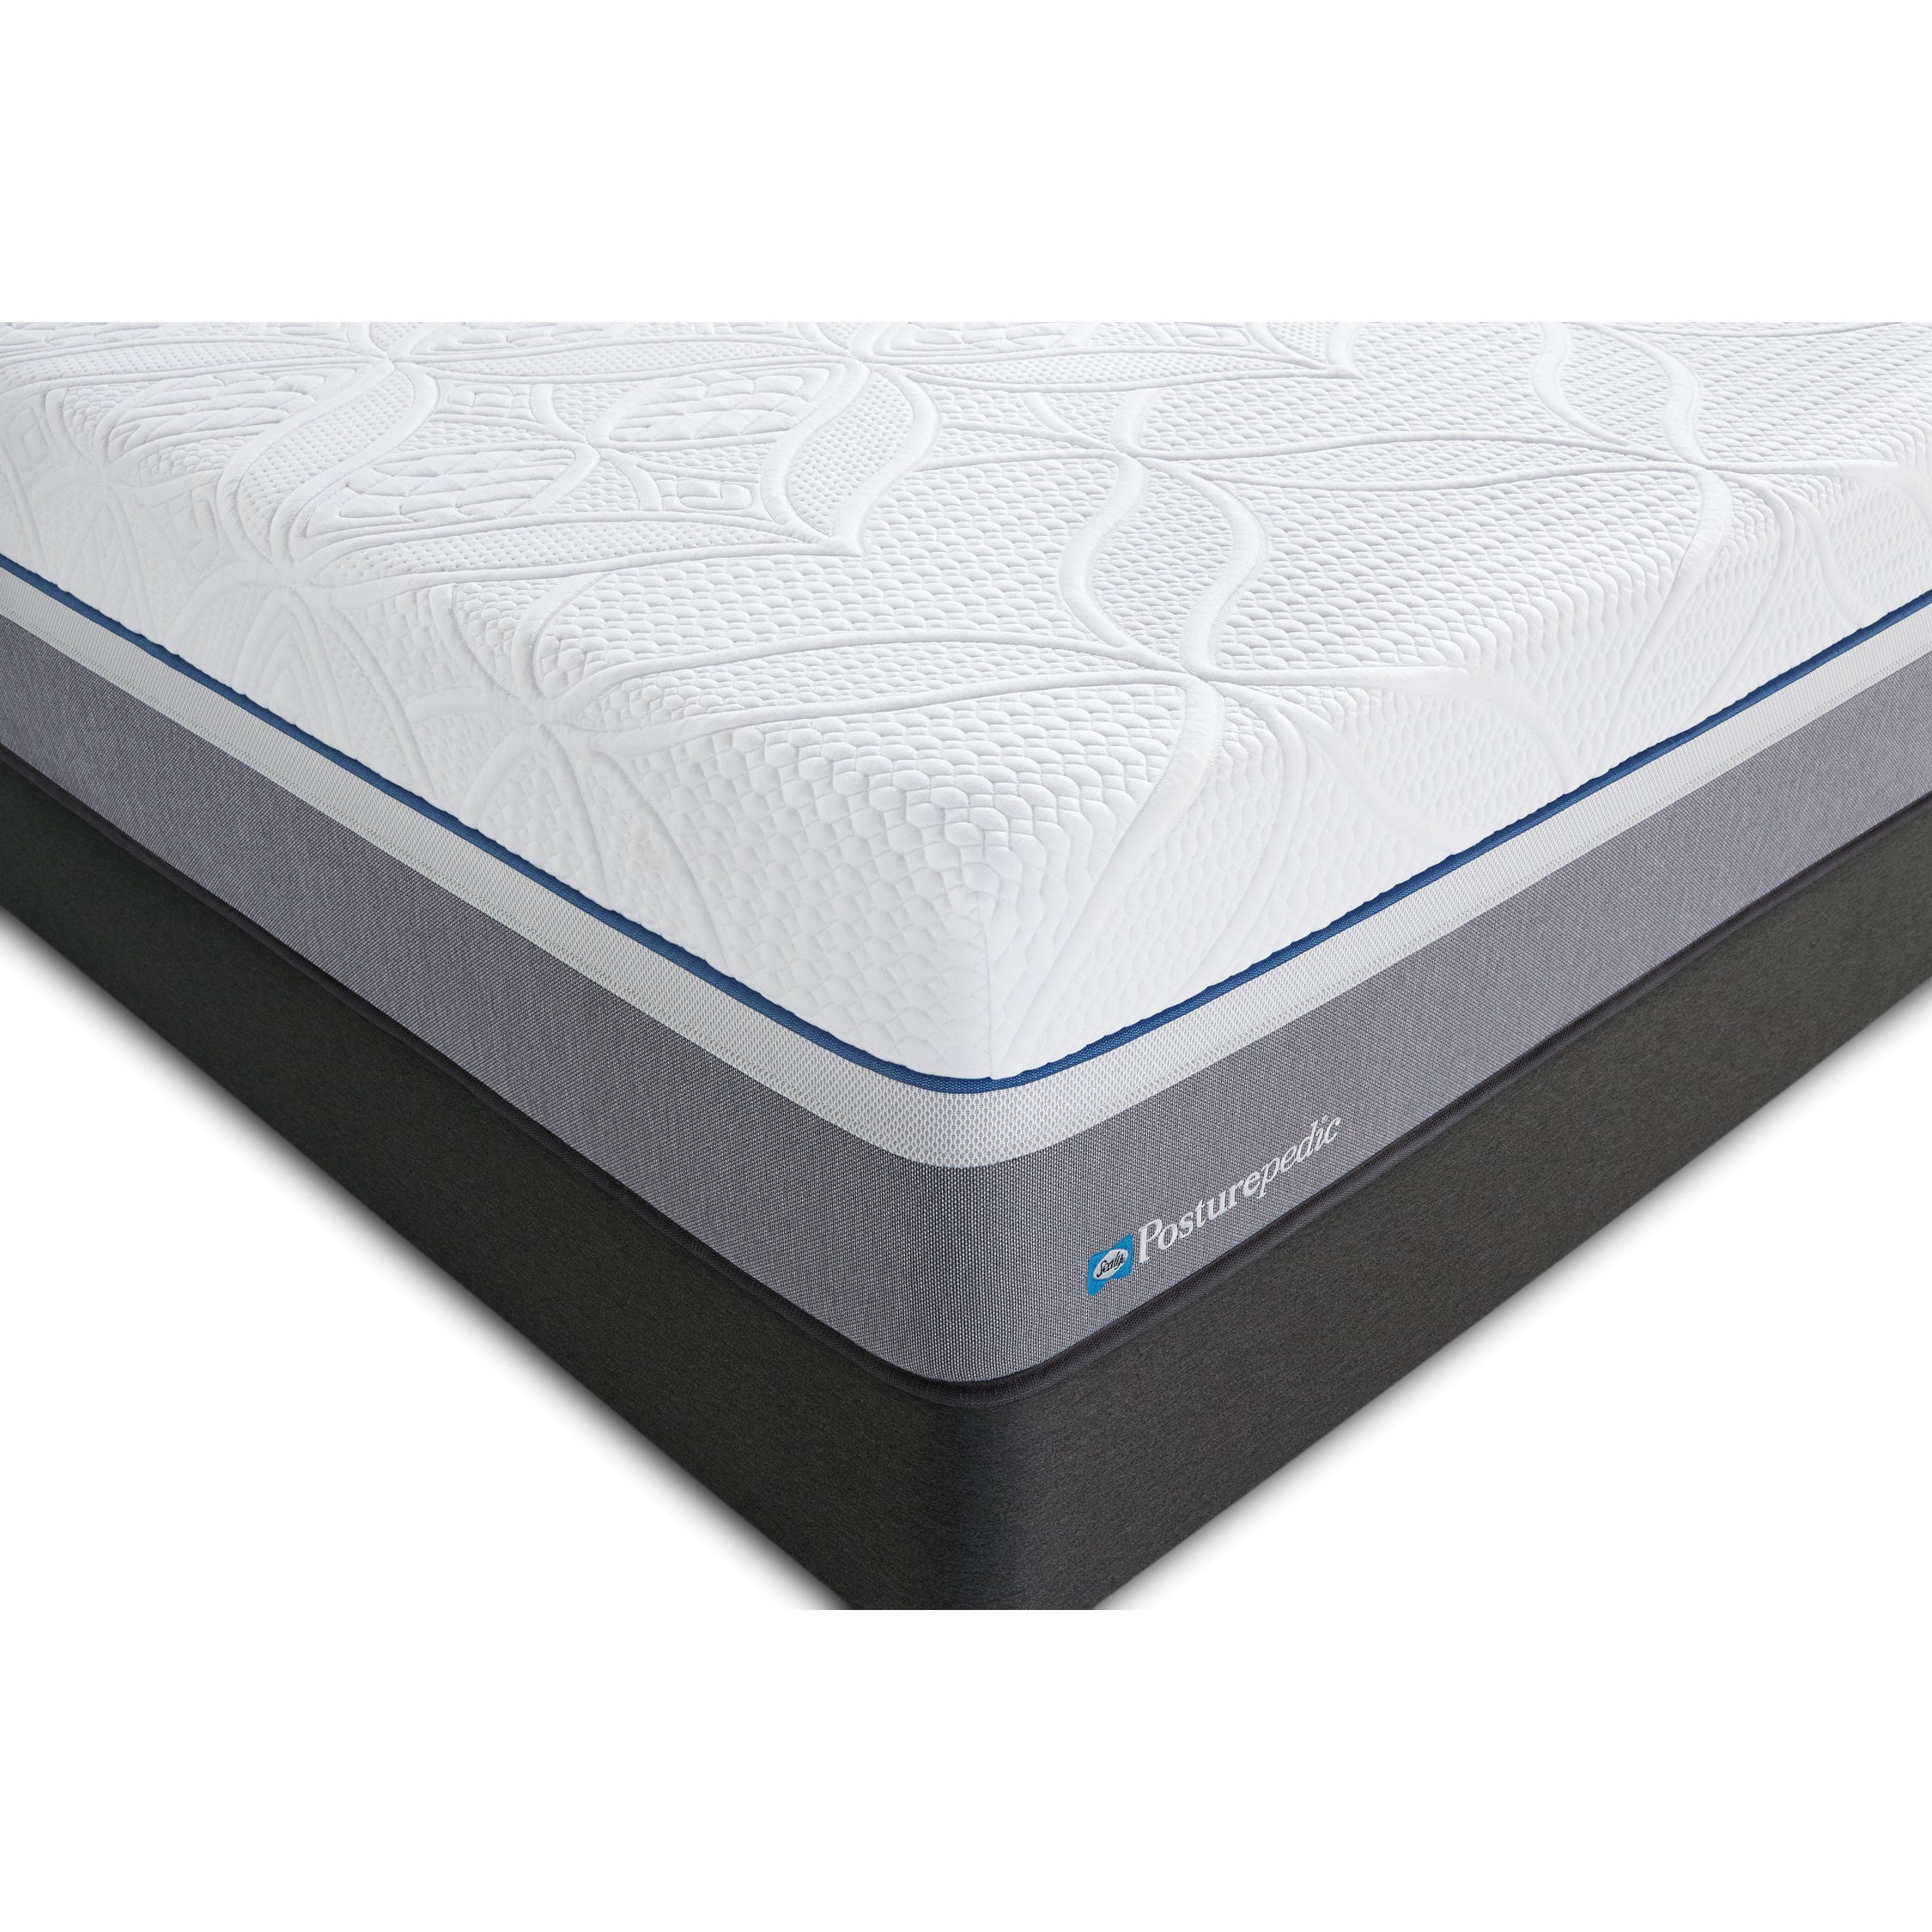 Sealy Posturepedic Hybrid Copper Plush King size Mattress Free